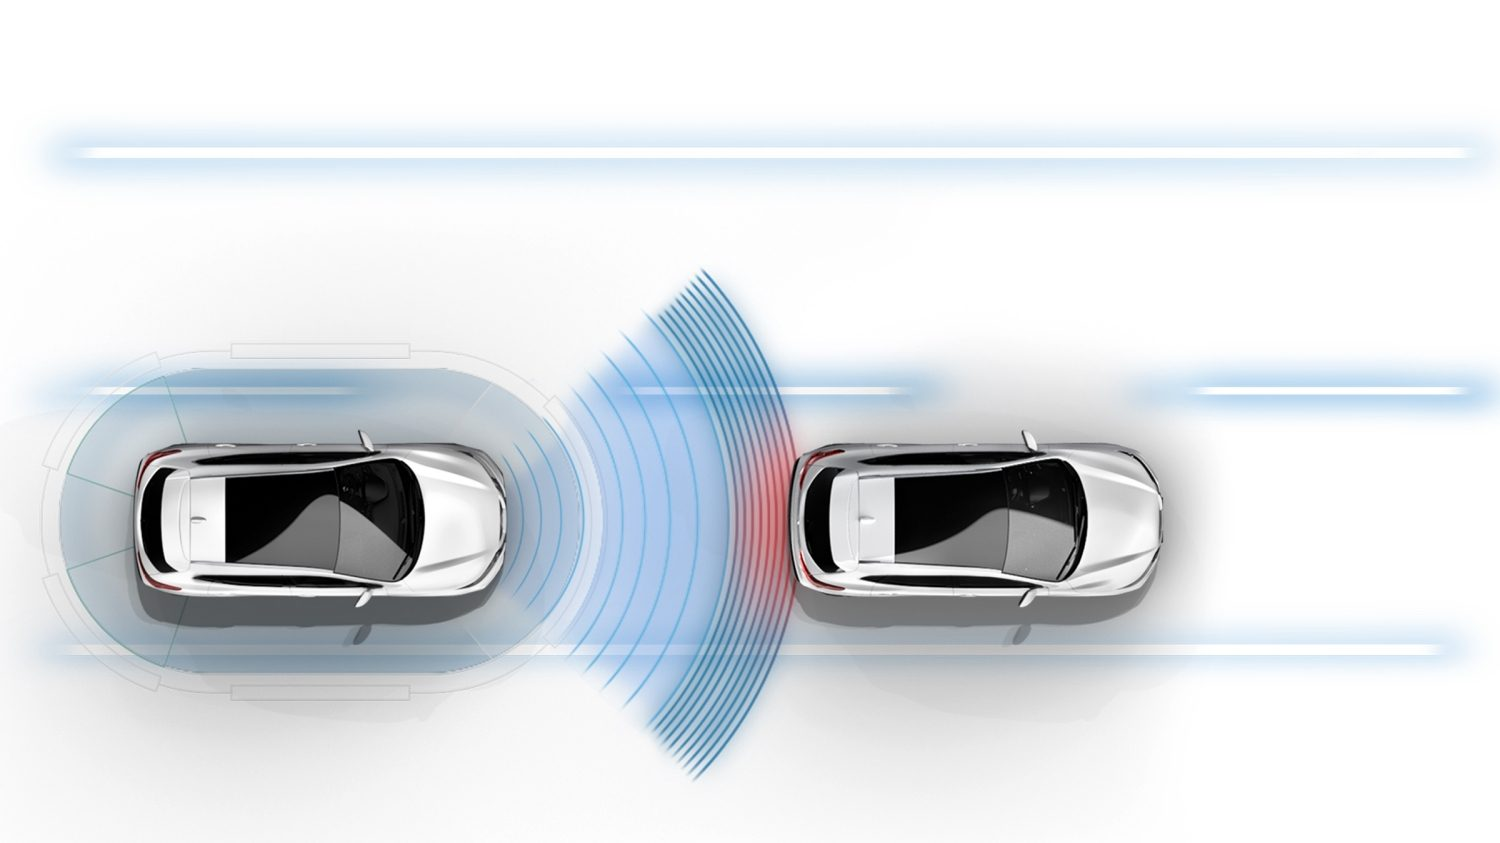 Qashqai Intelligent Emergency Braking illustration